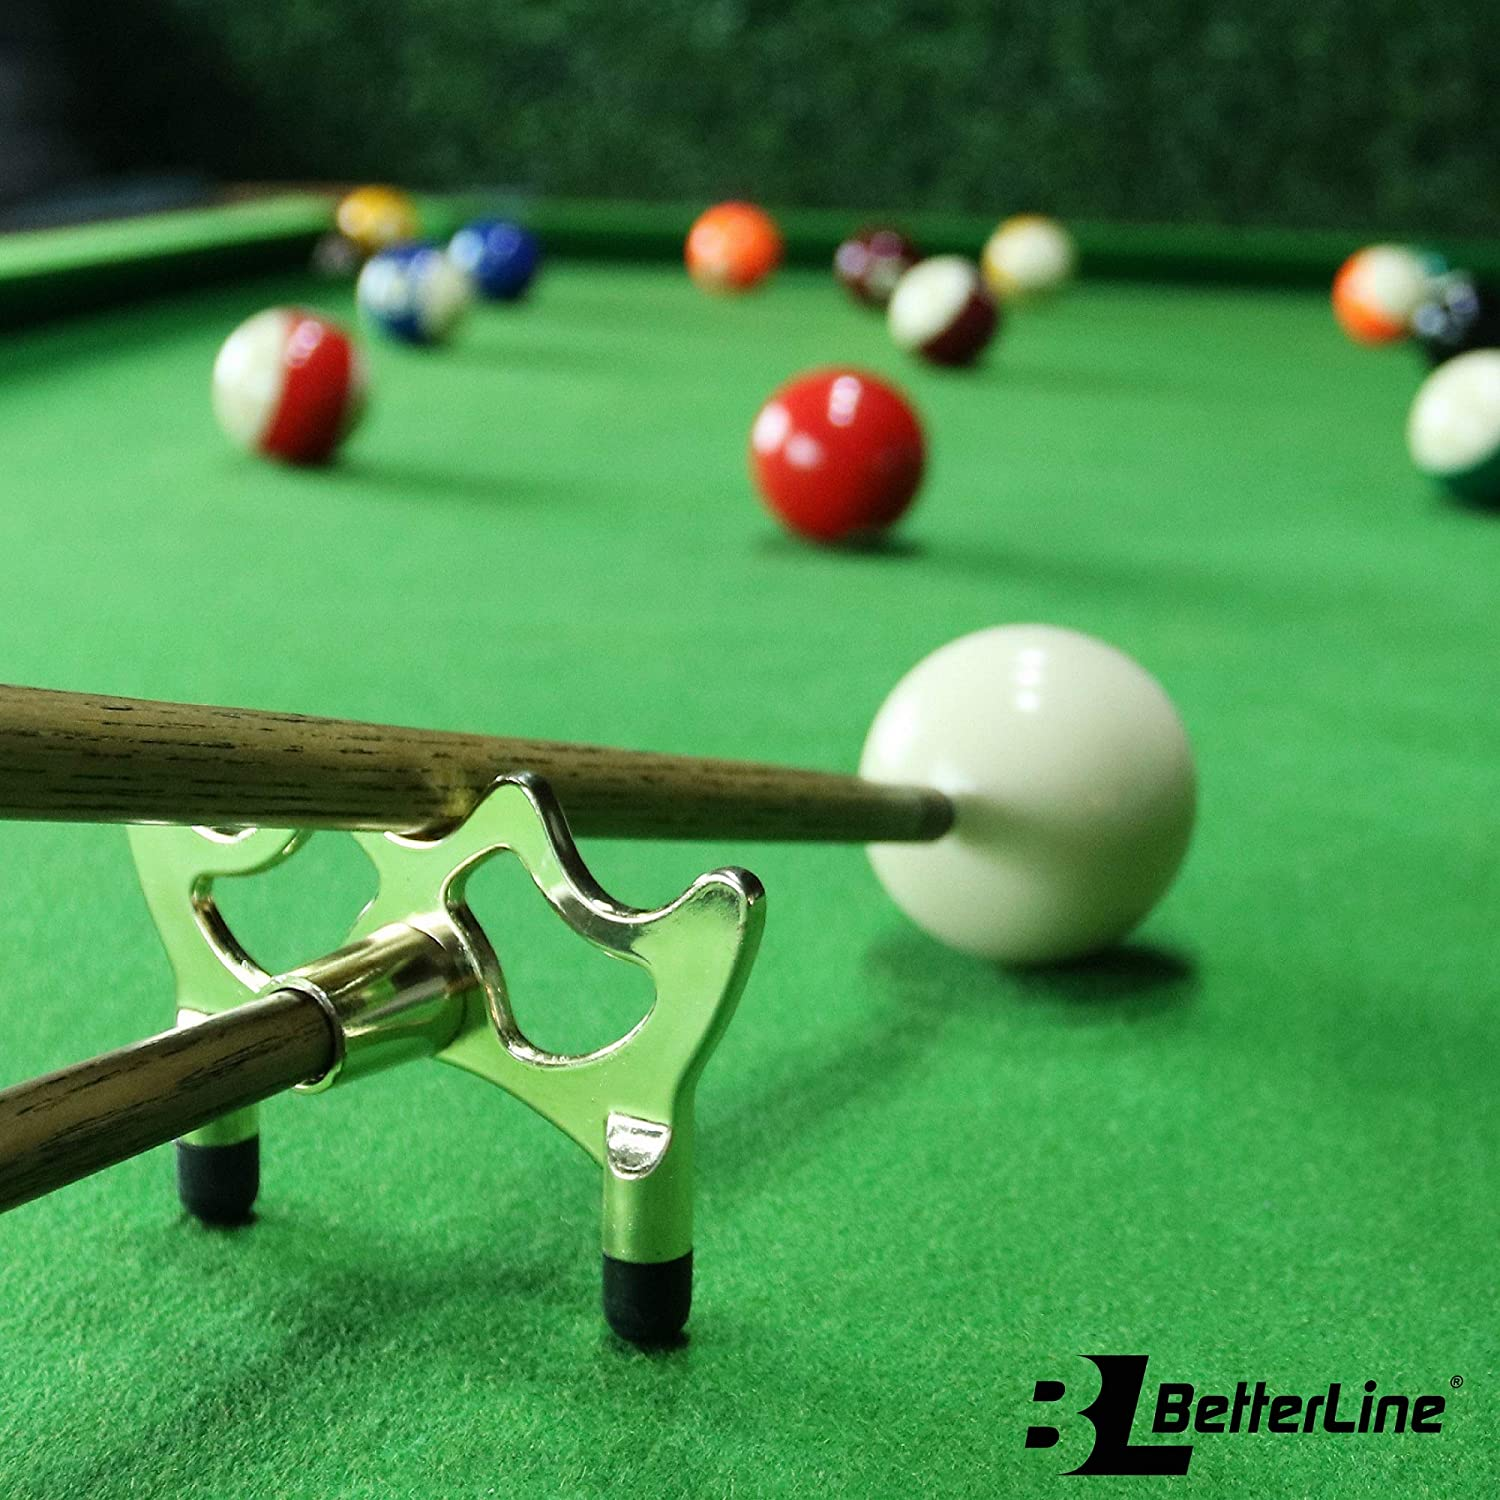 BETTERLINE Billar Cue Puente Spider Cabeza y Cue Cross X Rest, 5 ...